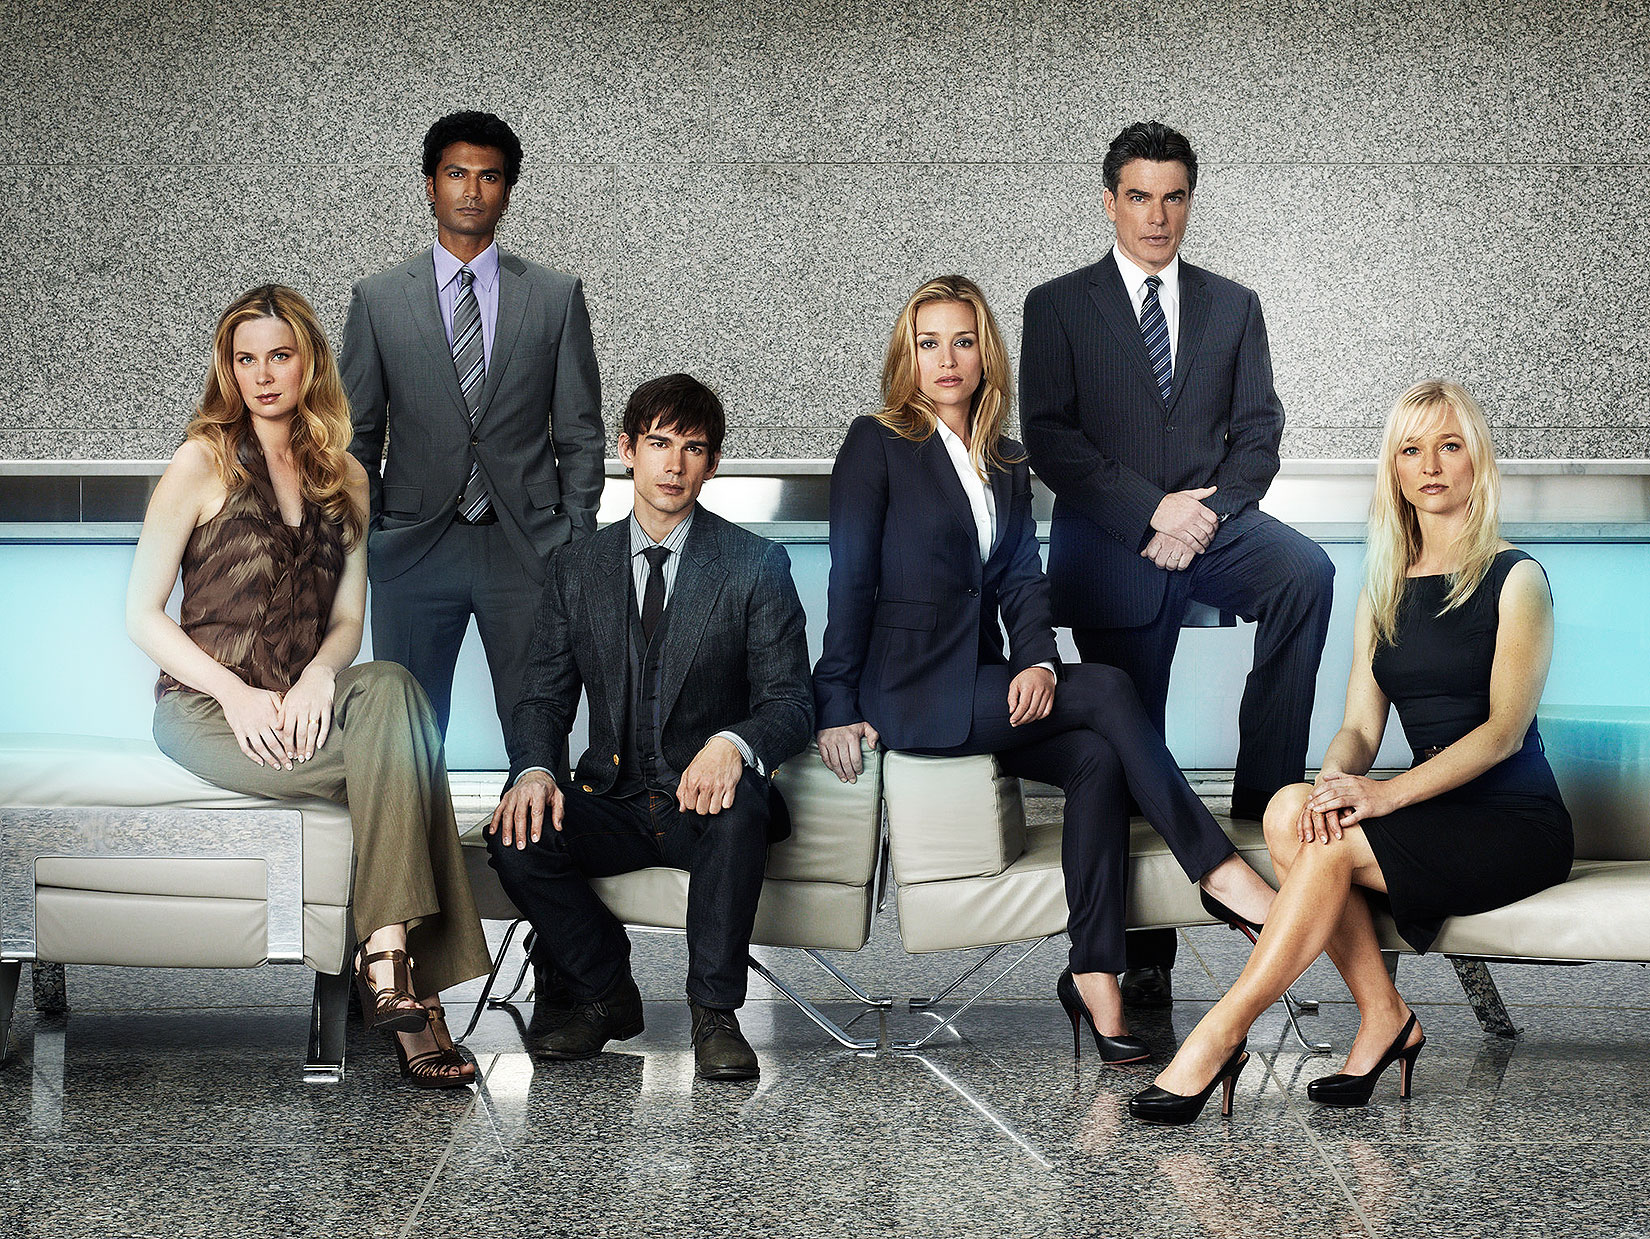 Covert-Affairs-Cast-by-Robert-Ascroft.jpg